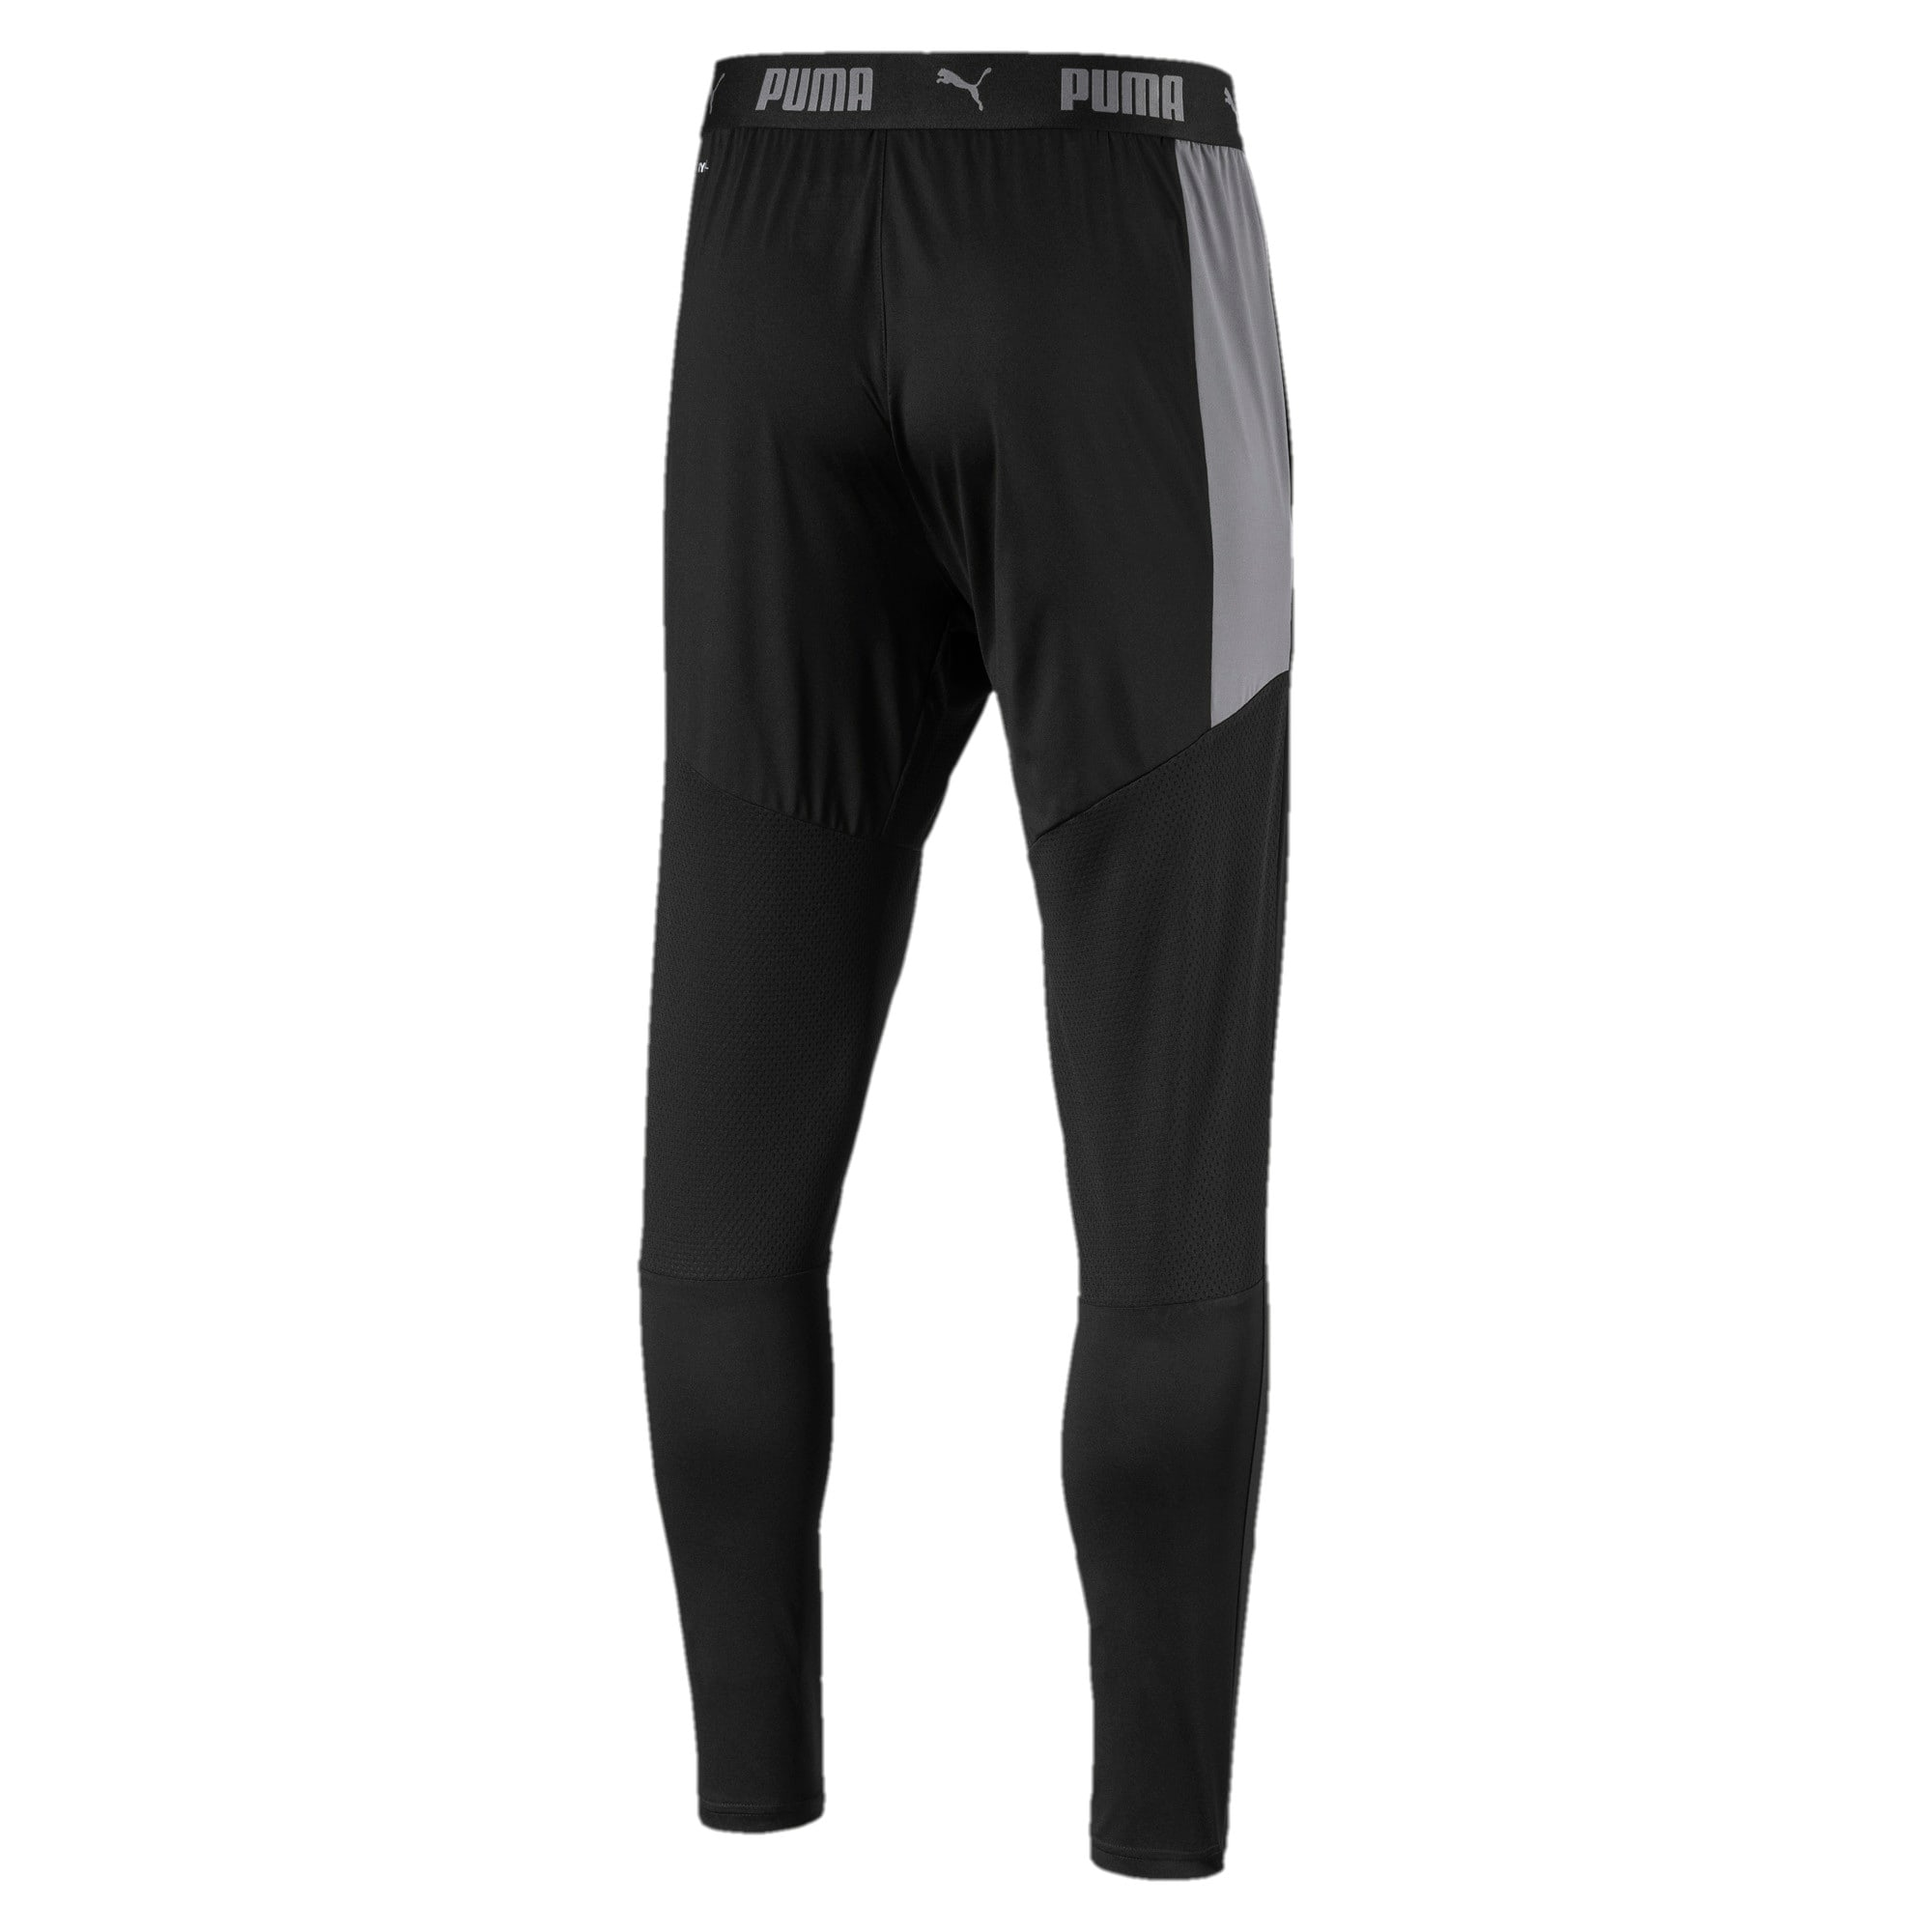 Thumbnail 5 of Knitted Men's Pants, Puma Black, medium